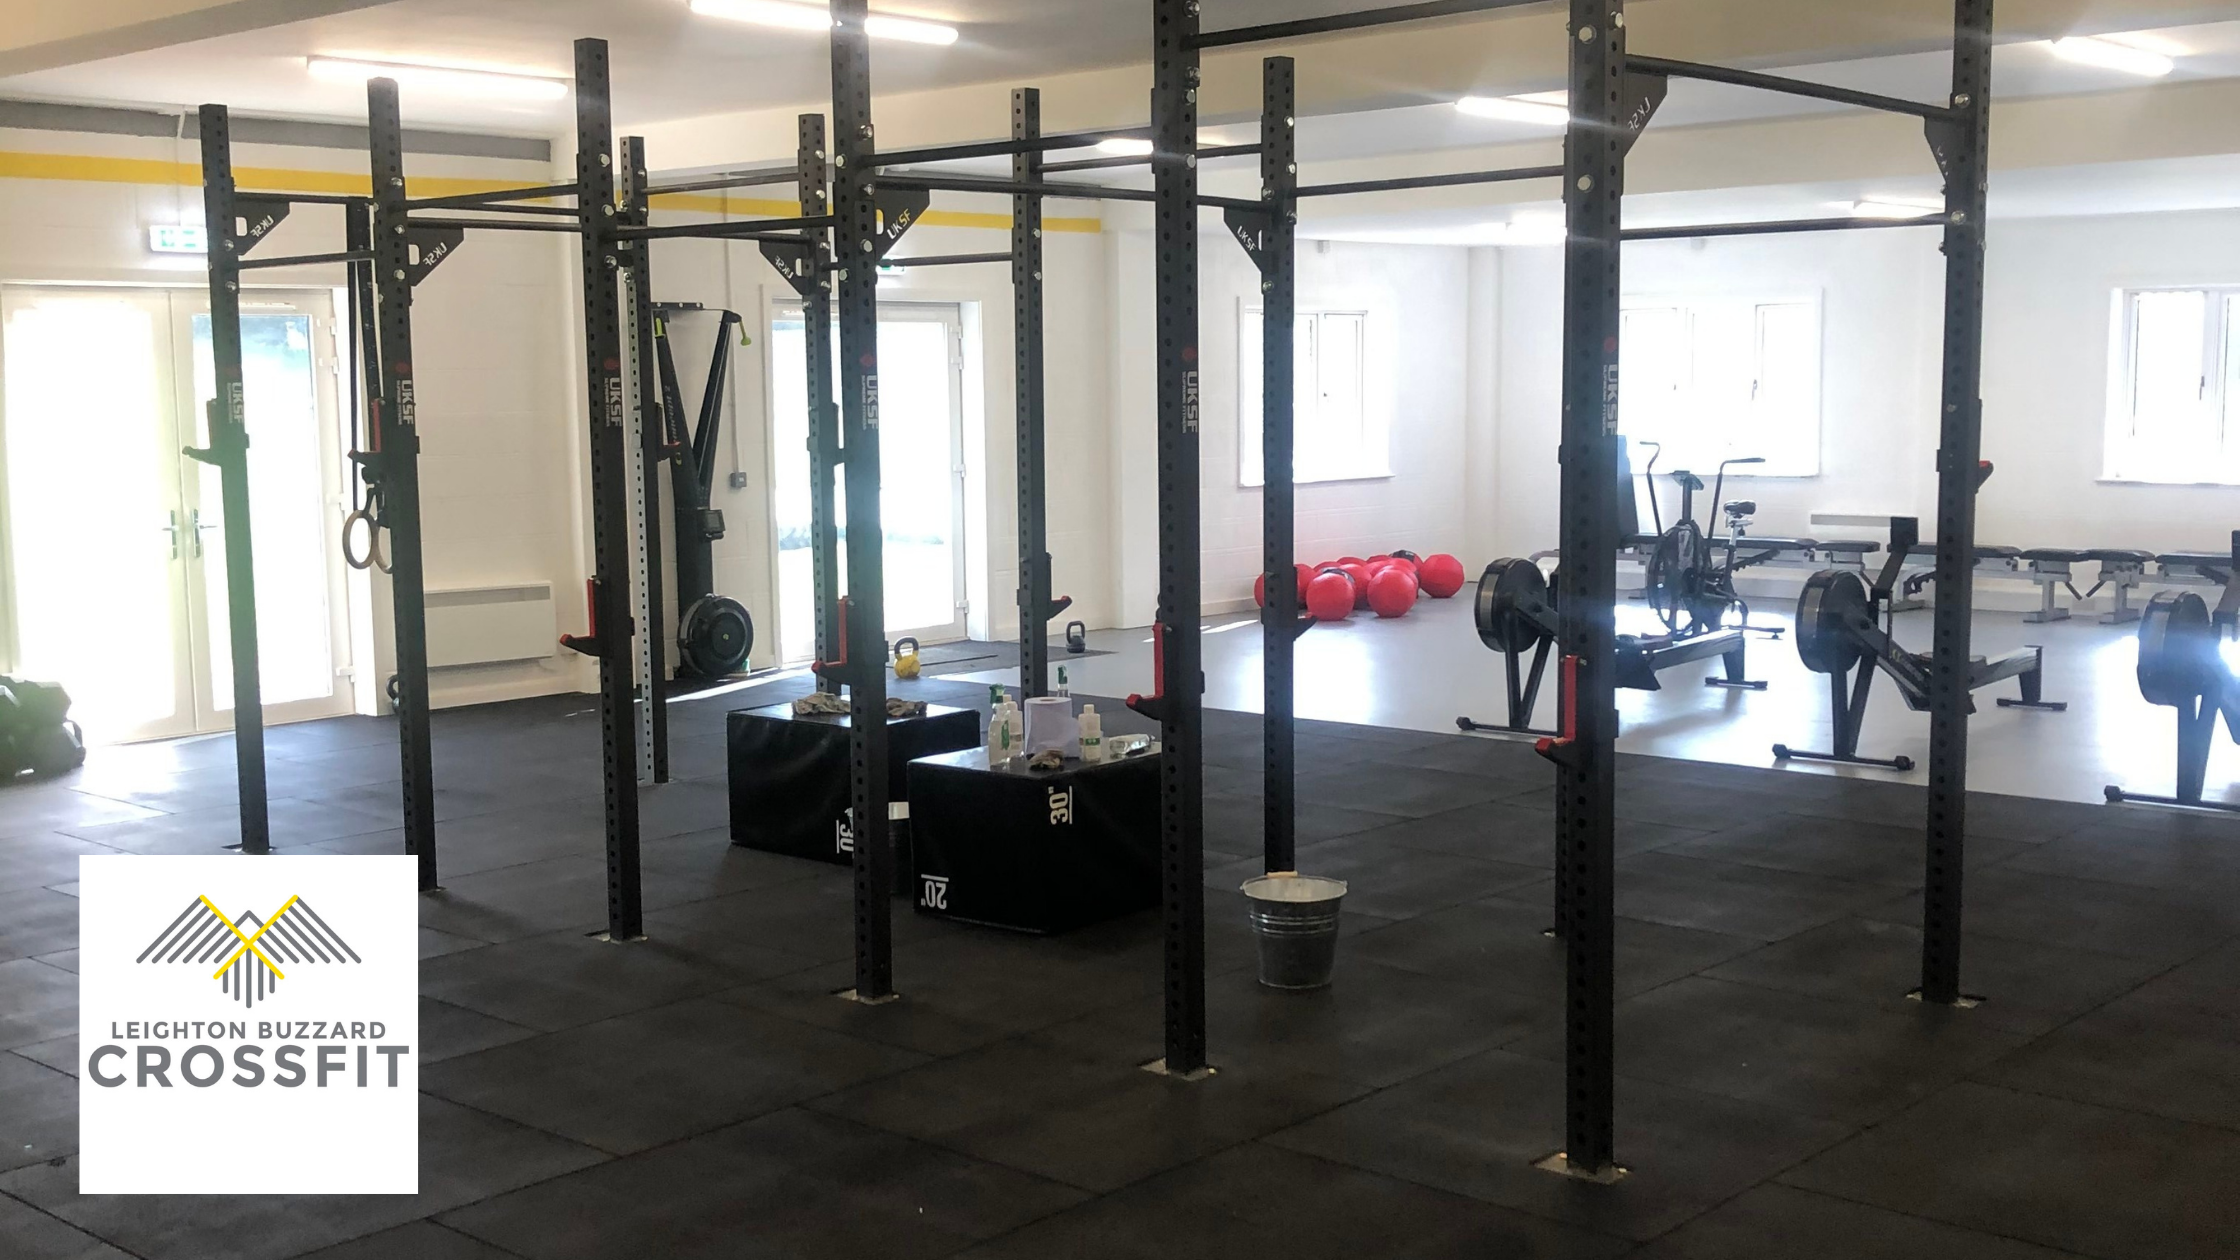 Customer Profile – Leighton Buzzard CrossFit